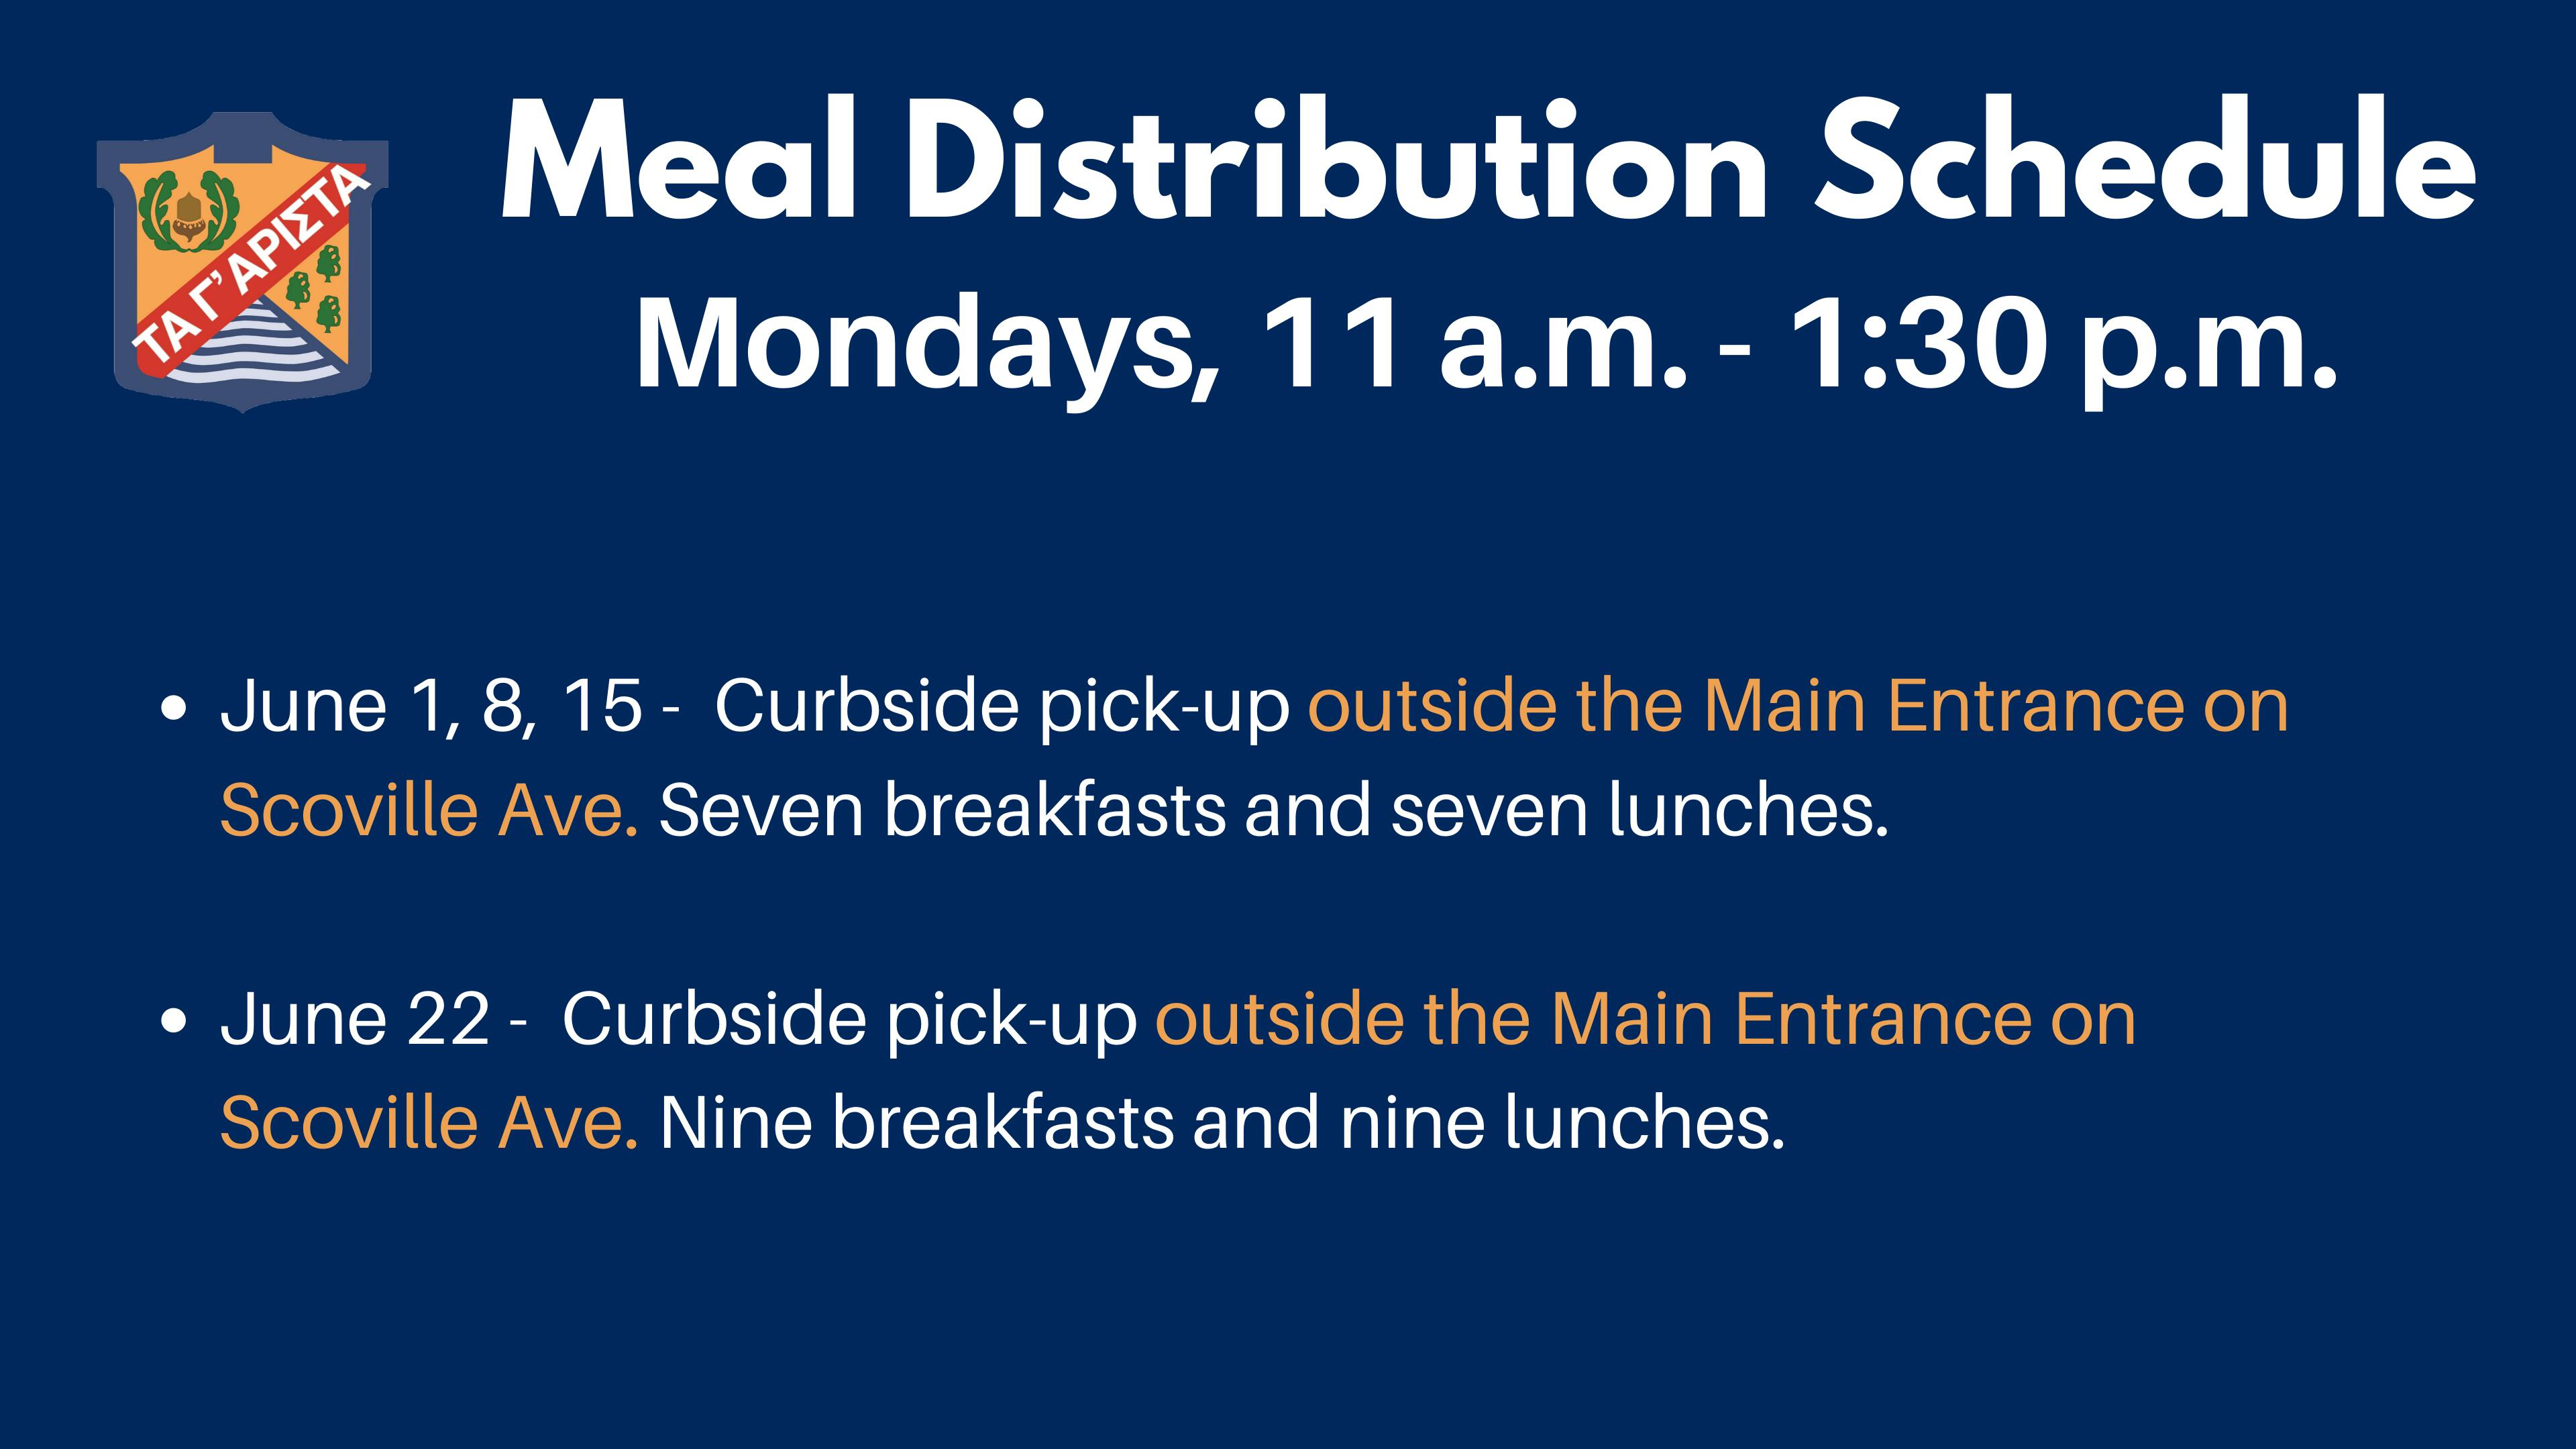 Meal Distribution Update